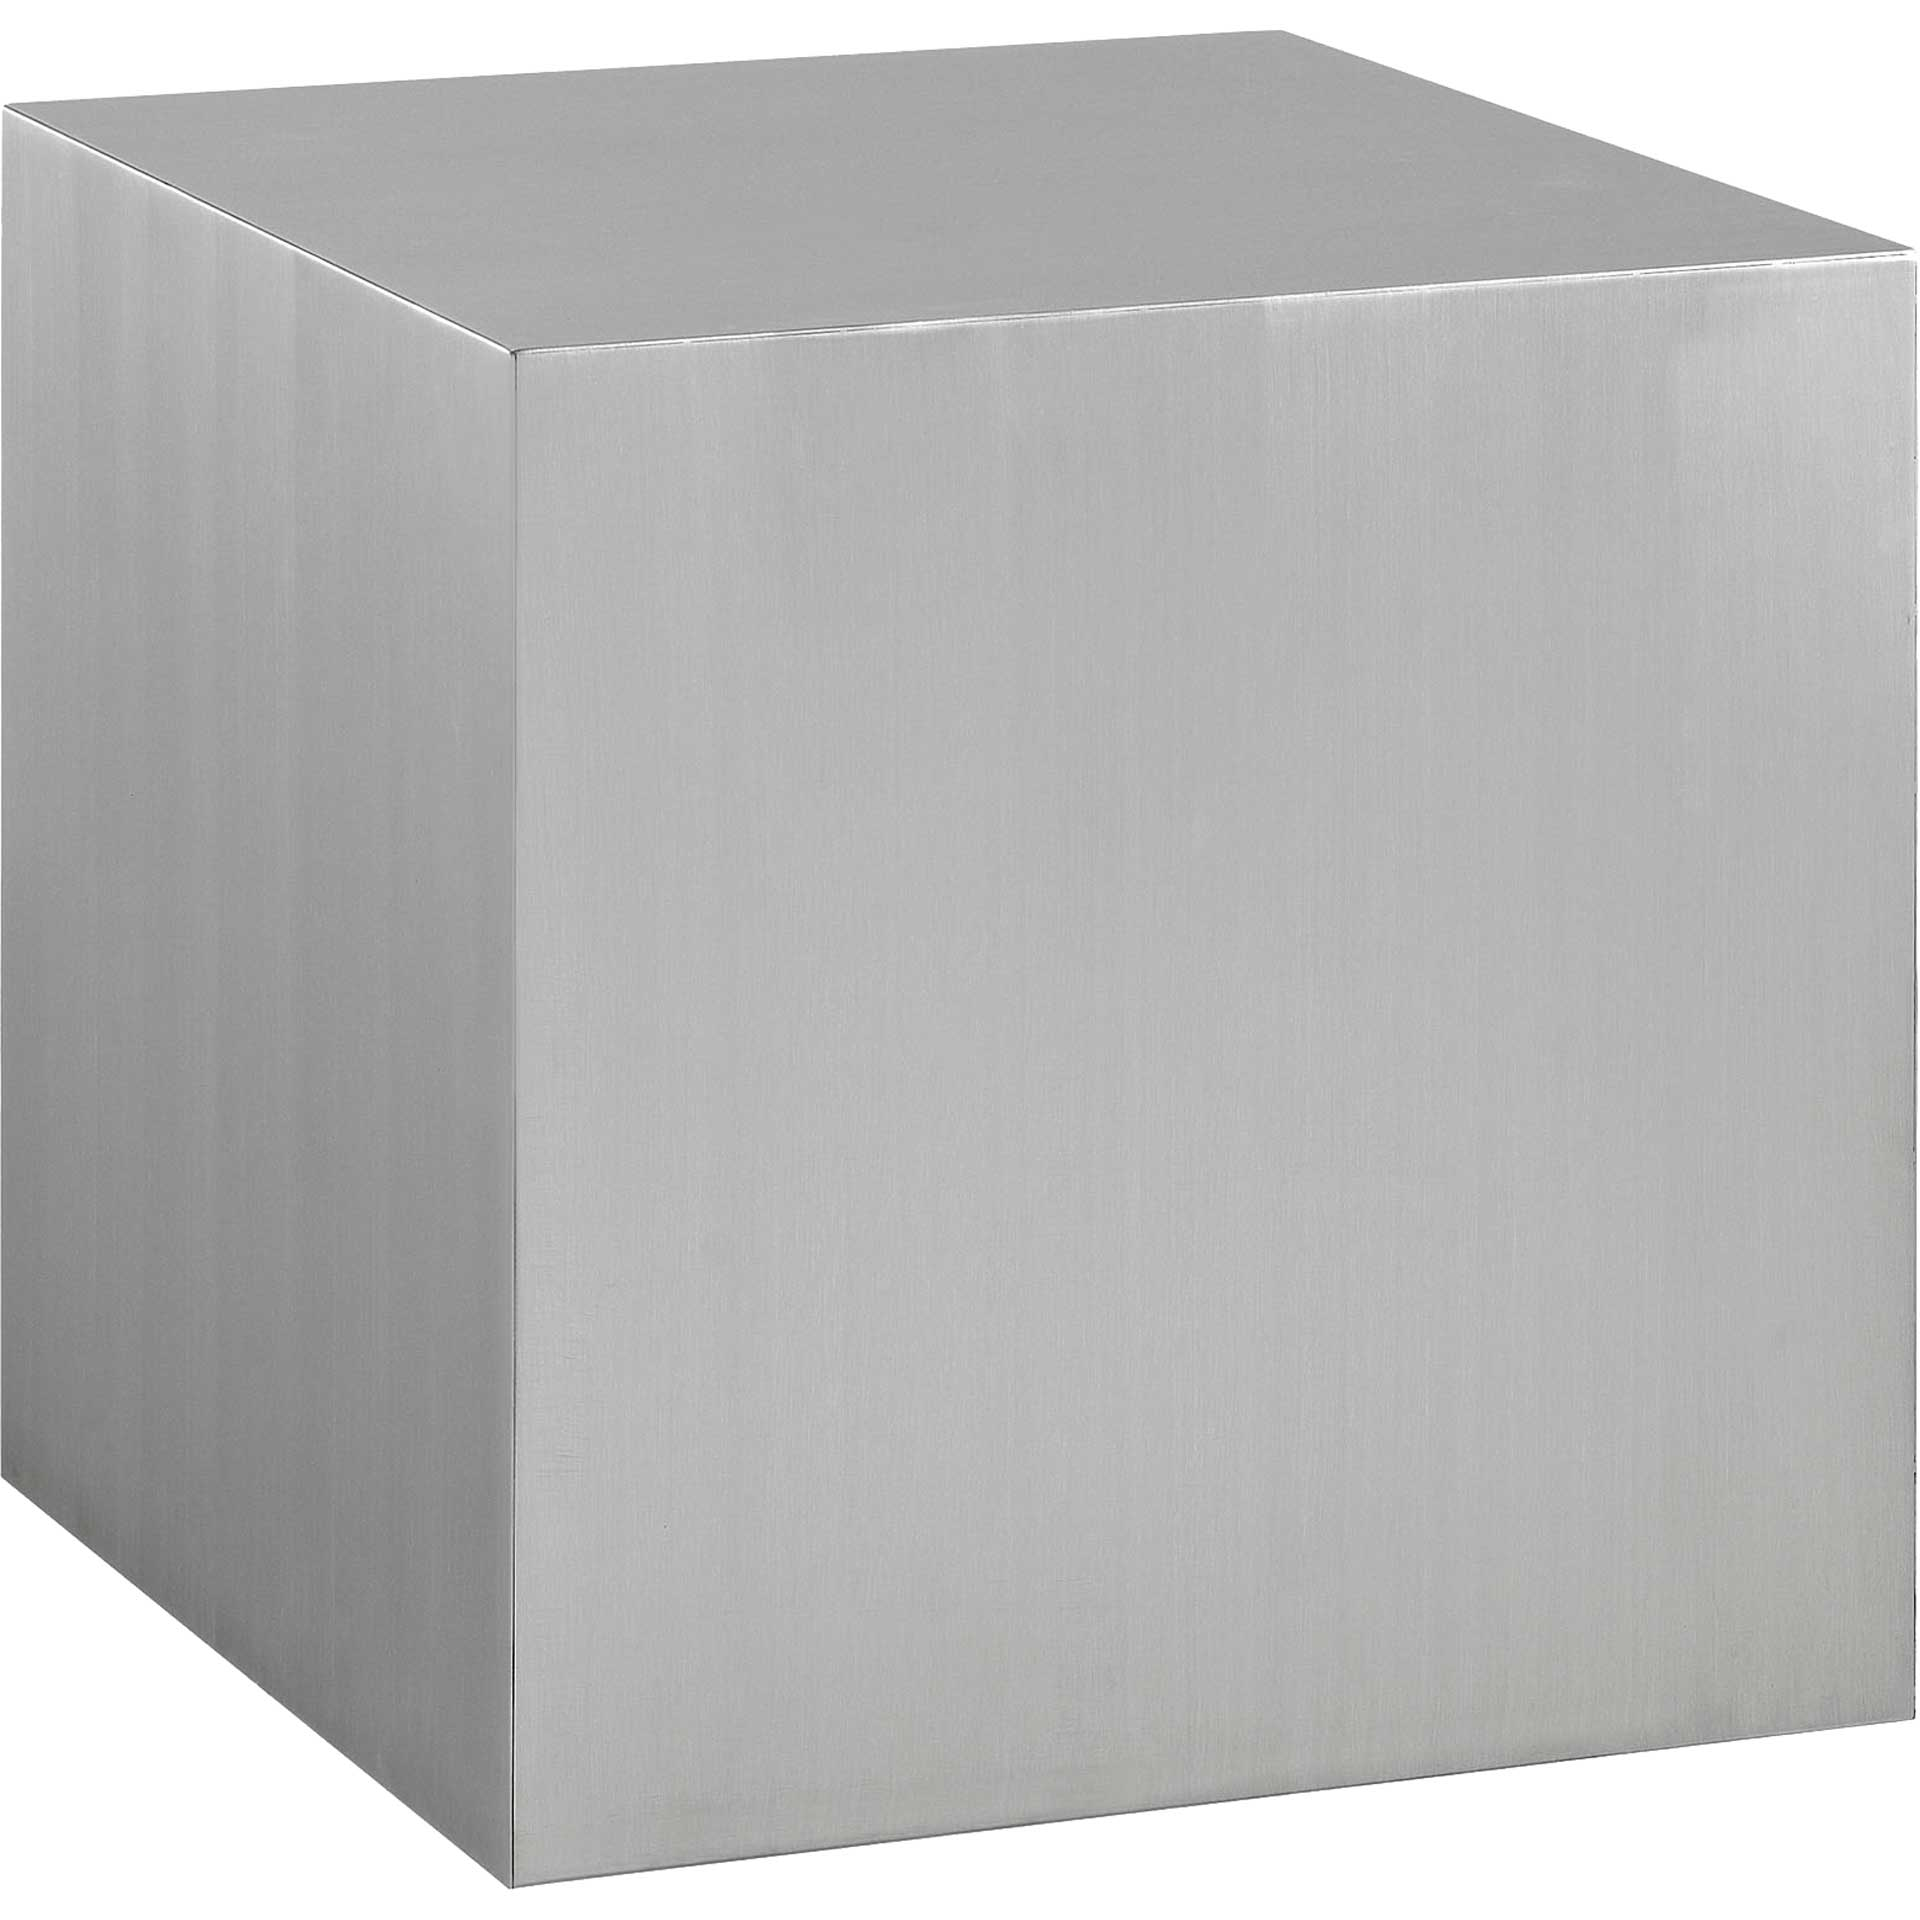 Cabin Stainless Steel Side Table Silver